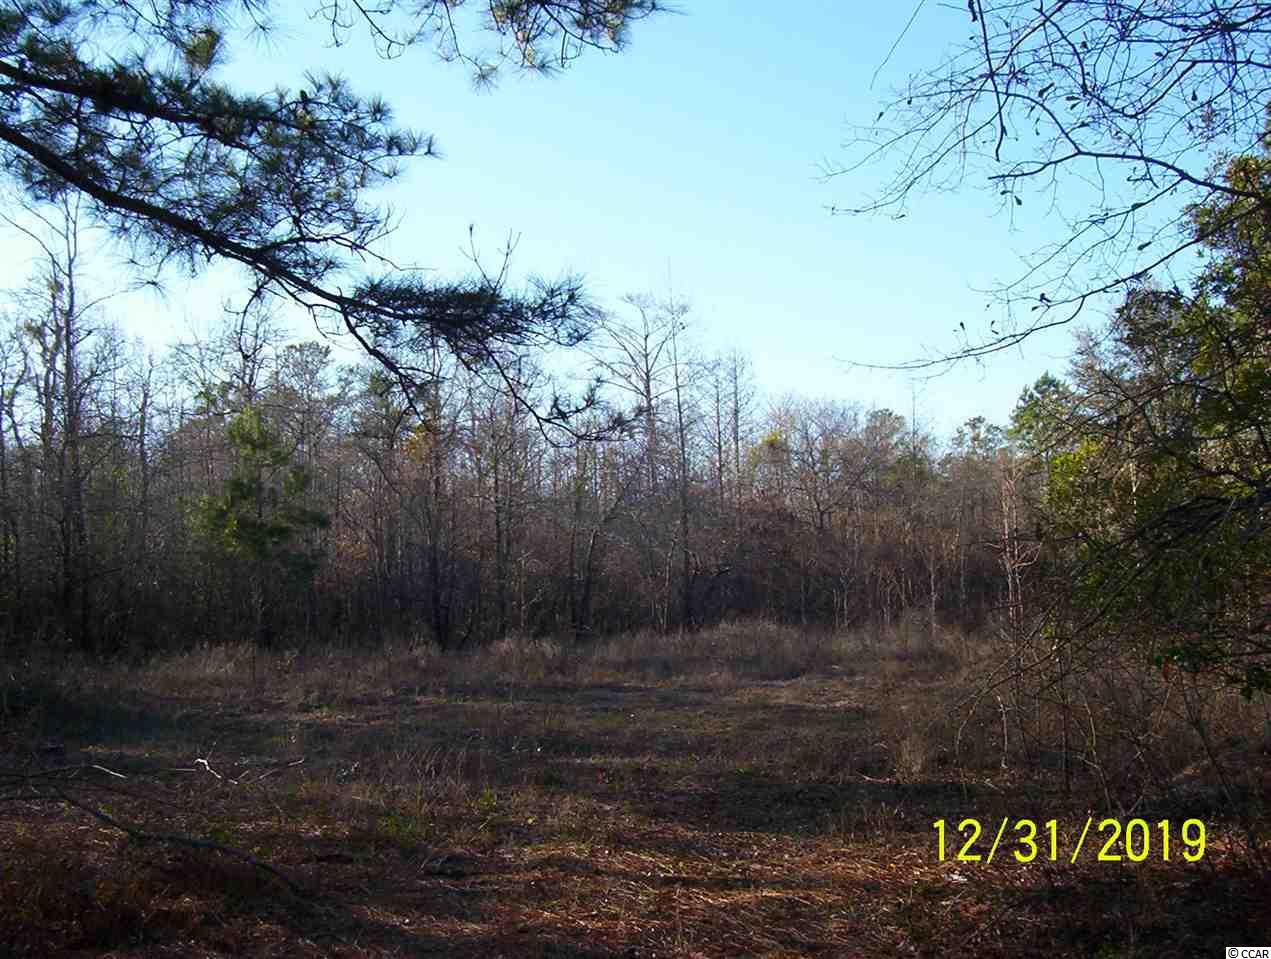 VERY NICE 4.68 ACRE WACCAMAW RIVERFRONT TRACT NORTH OF CONWAY, VERY QUIET AND PEACEFUL AREA, TRACT SIZE IS 154 X 1,094 X 162 X 1,210, SURVEY PLAT ON FILE, HOUSE MUST BE BUILT ON PILINGS, ACTUALLY CONVENIENT TO MYRTLE BEACH, OWNER FINANCING, EXCELLENT PRICE!!!!!